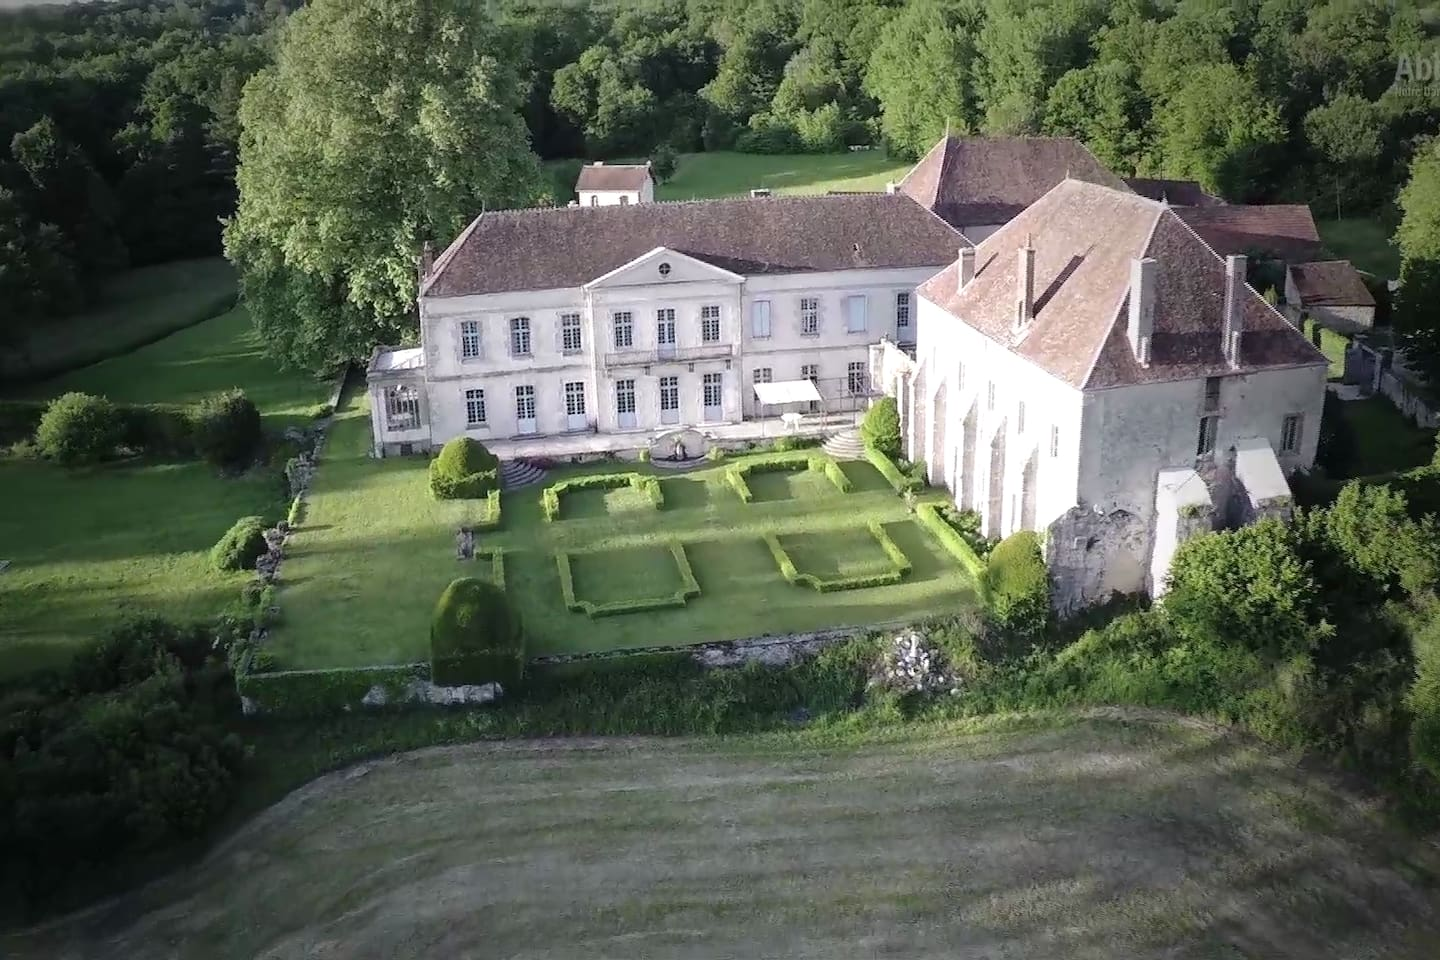 Vue panoramique de l'Abbaye côté sud - Panoramic view of the southern side of the Abbey